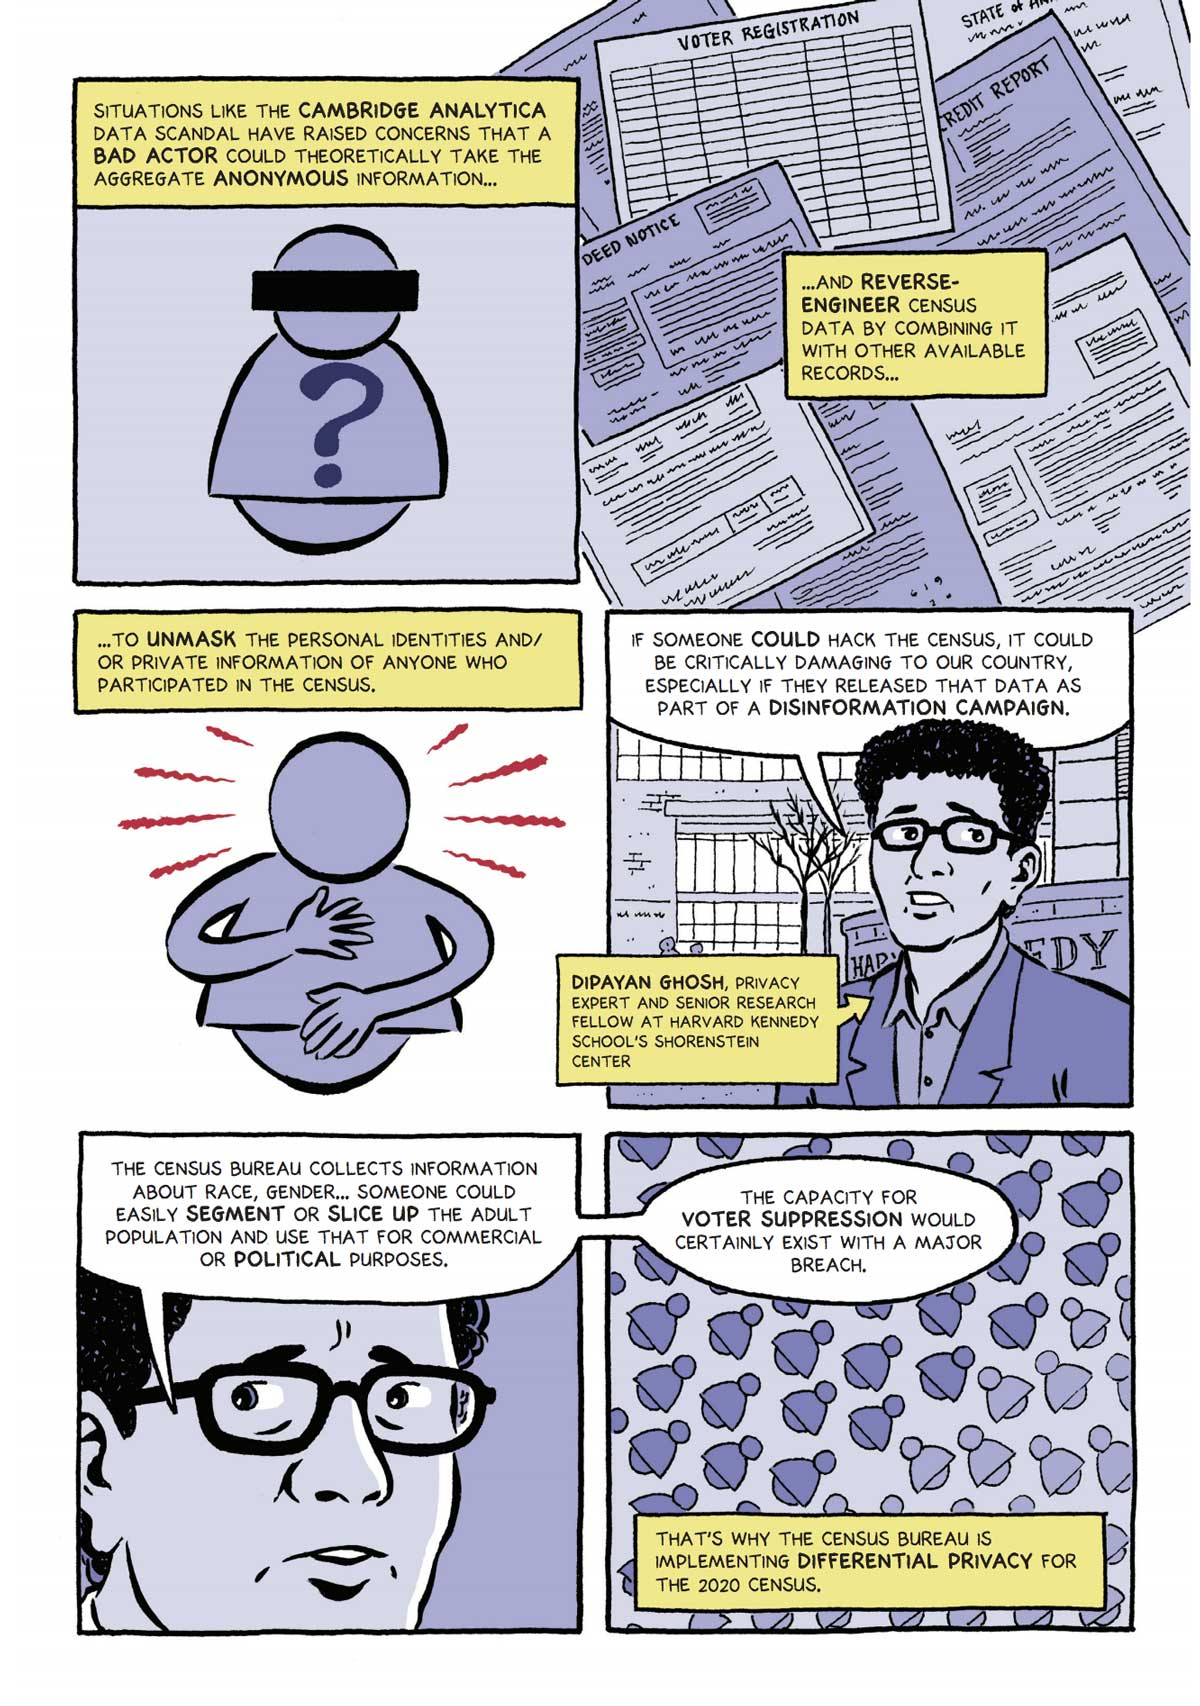 differential privacy explainer 2020 census comic